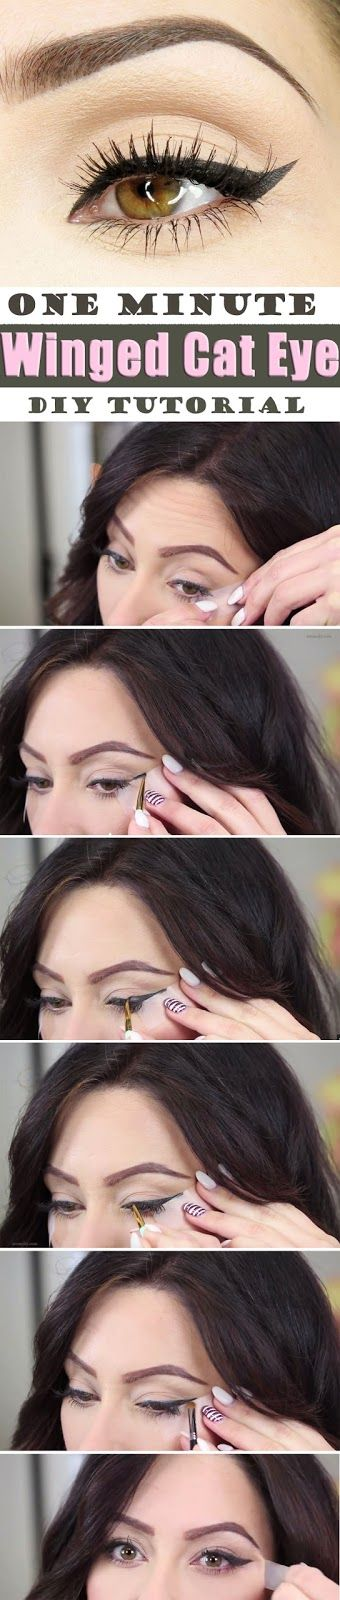 Winged Cat Eye Tutorial:   Needables:   Tape  Eyeliner Brush  Dark Eyeshadow  Smudging Brush    Steps:   Get Yourself ready with the m...